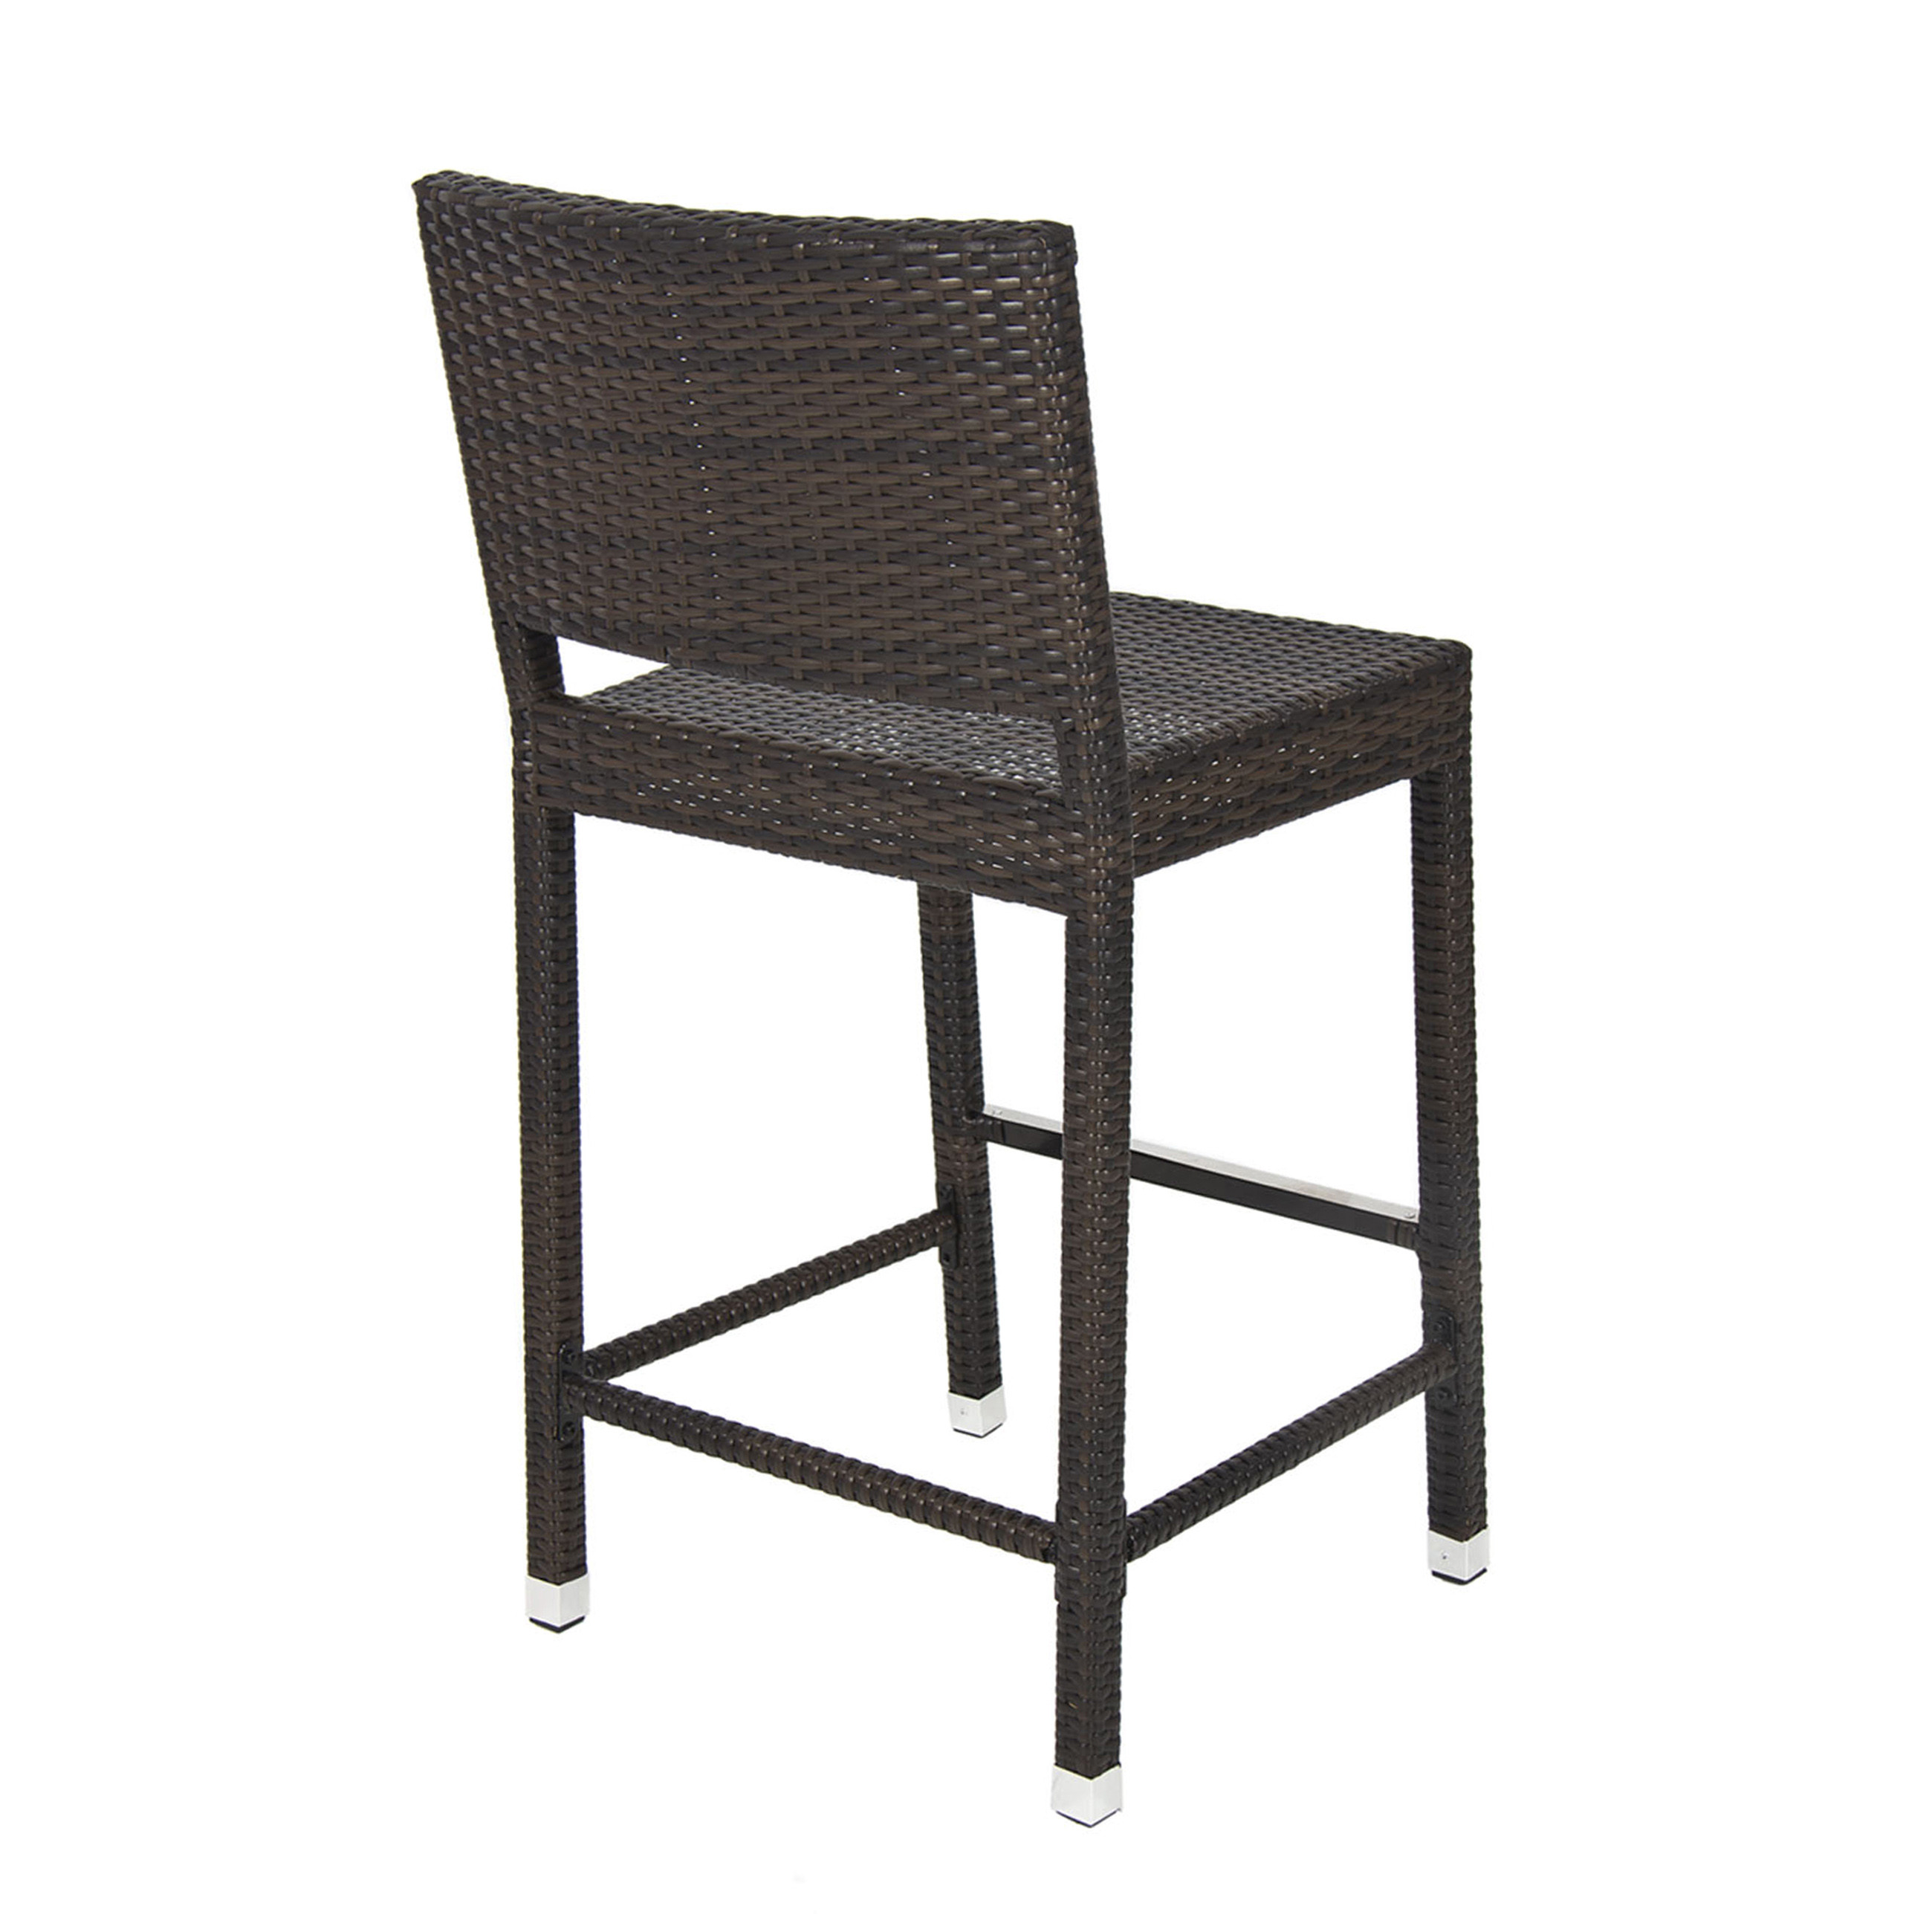 Best ideas about Patio Bar Stools . Save or Pin Outdoor Wicker Barstool All Weather Brown Patio Furniture Now.